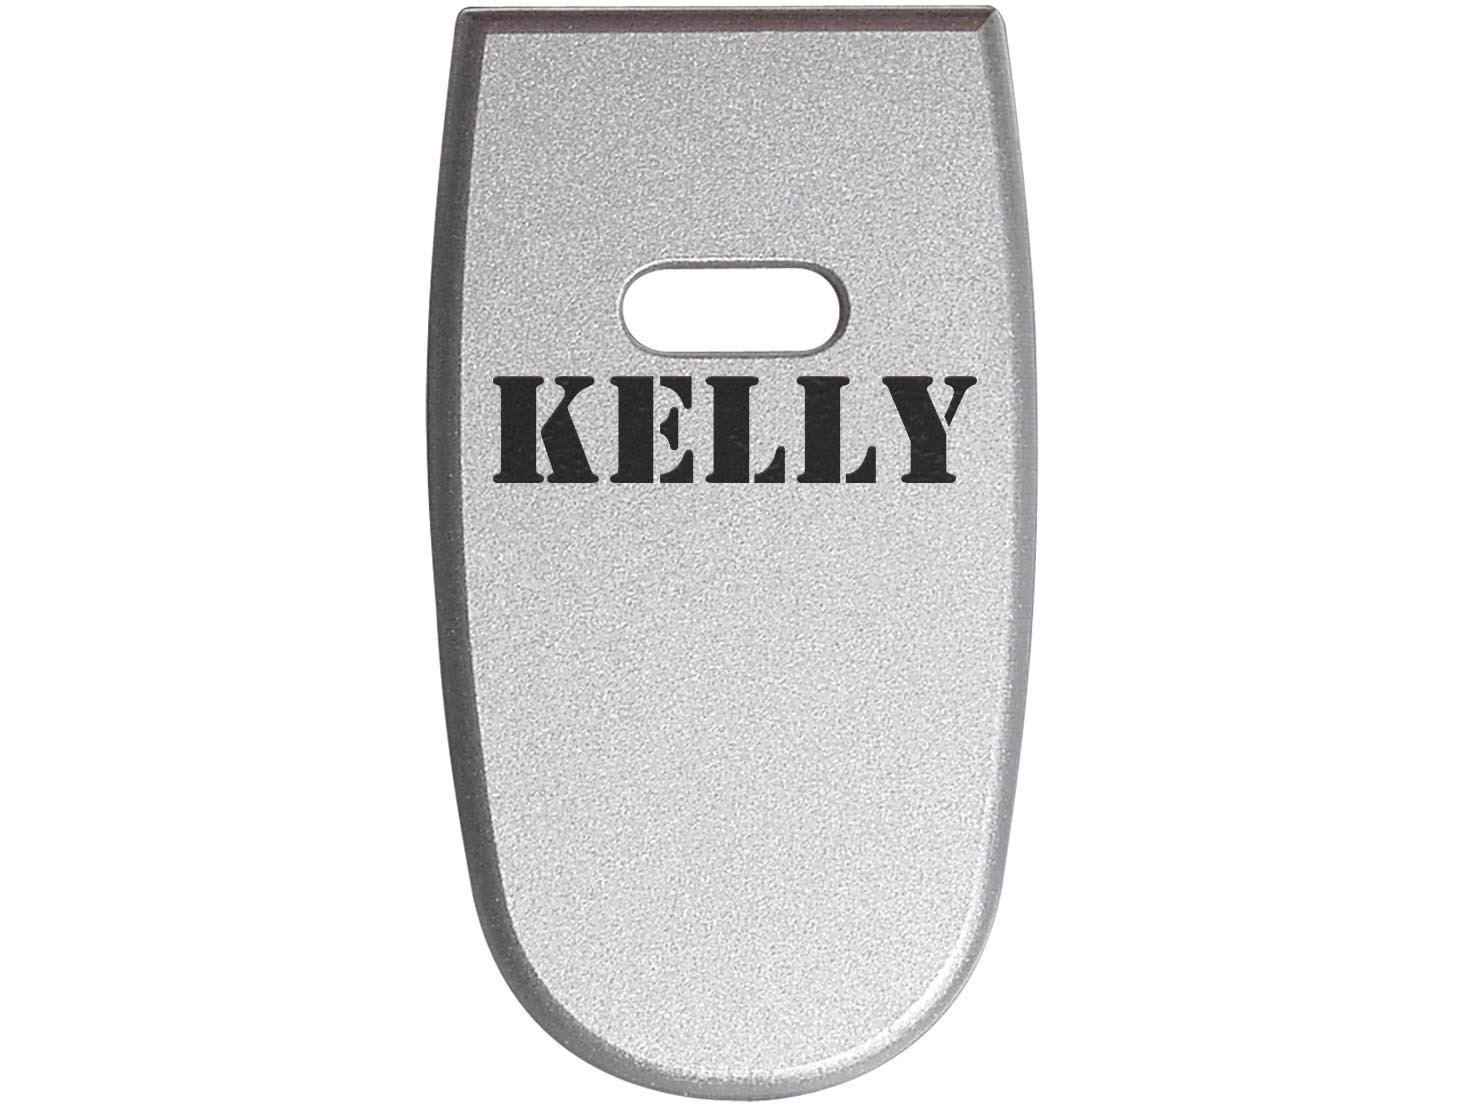 for S&W M&P Shield .45 Aluminum Floor Base Plate Silver Custom Laser Engraved: Name Kelly By NDZ Performance